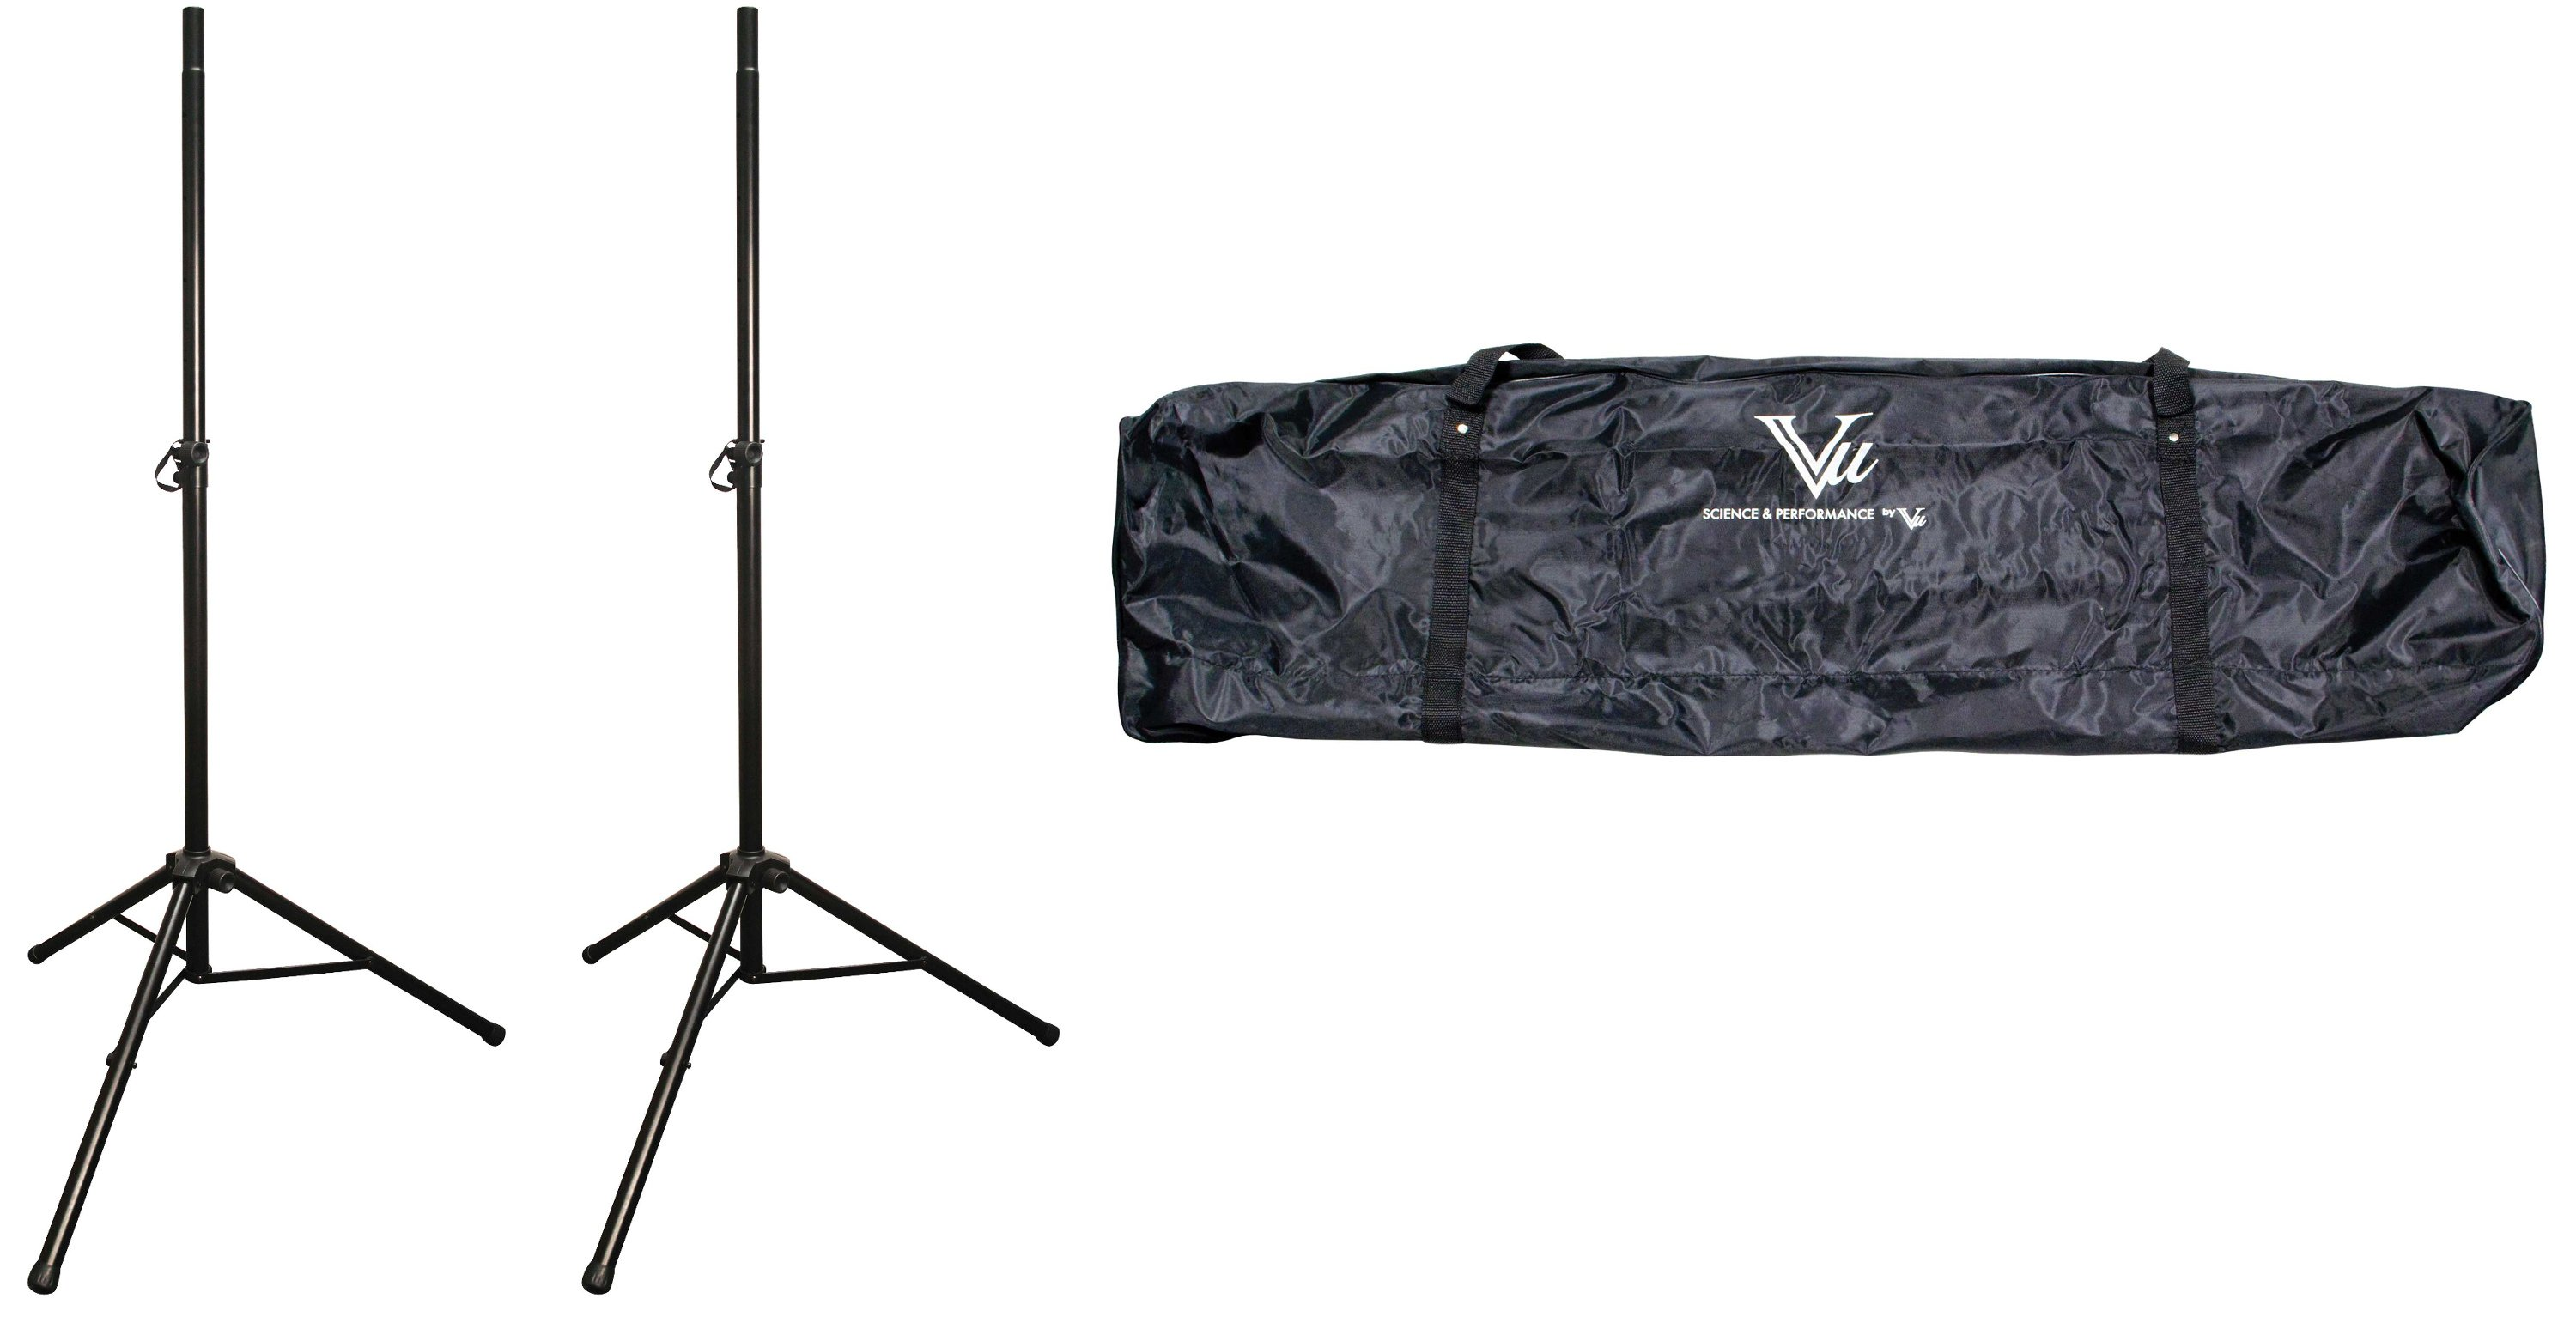 VU SSA100-PK1-K Stands And Bag Exclusive Bundle